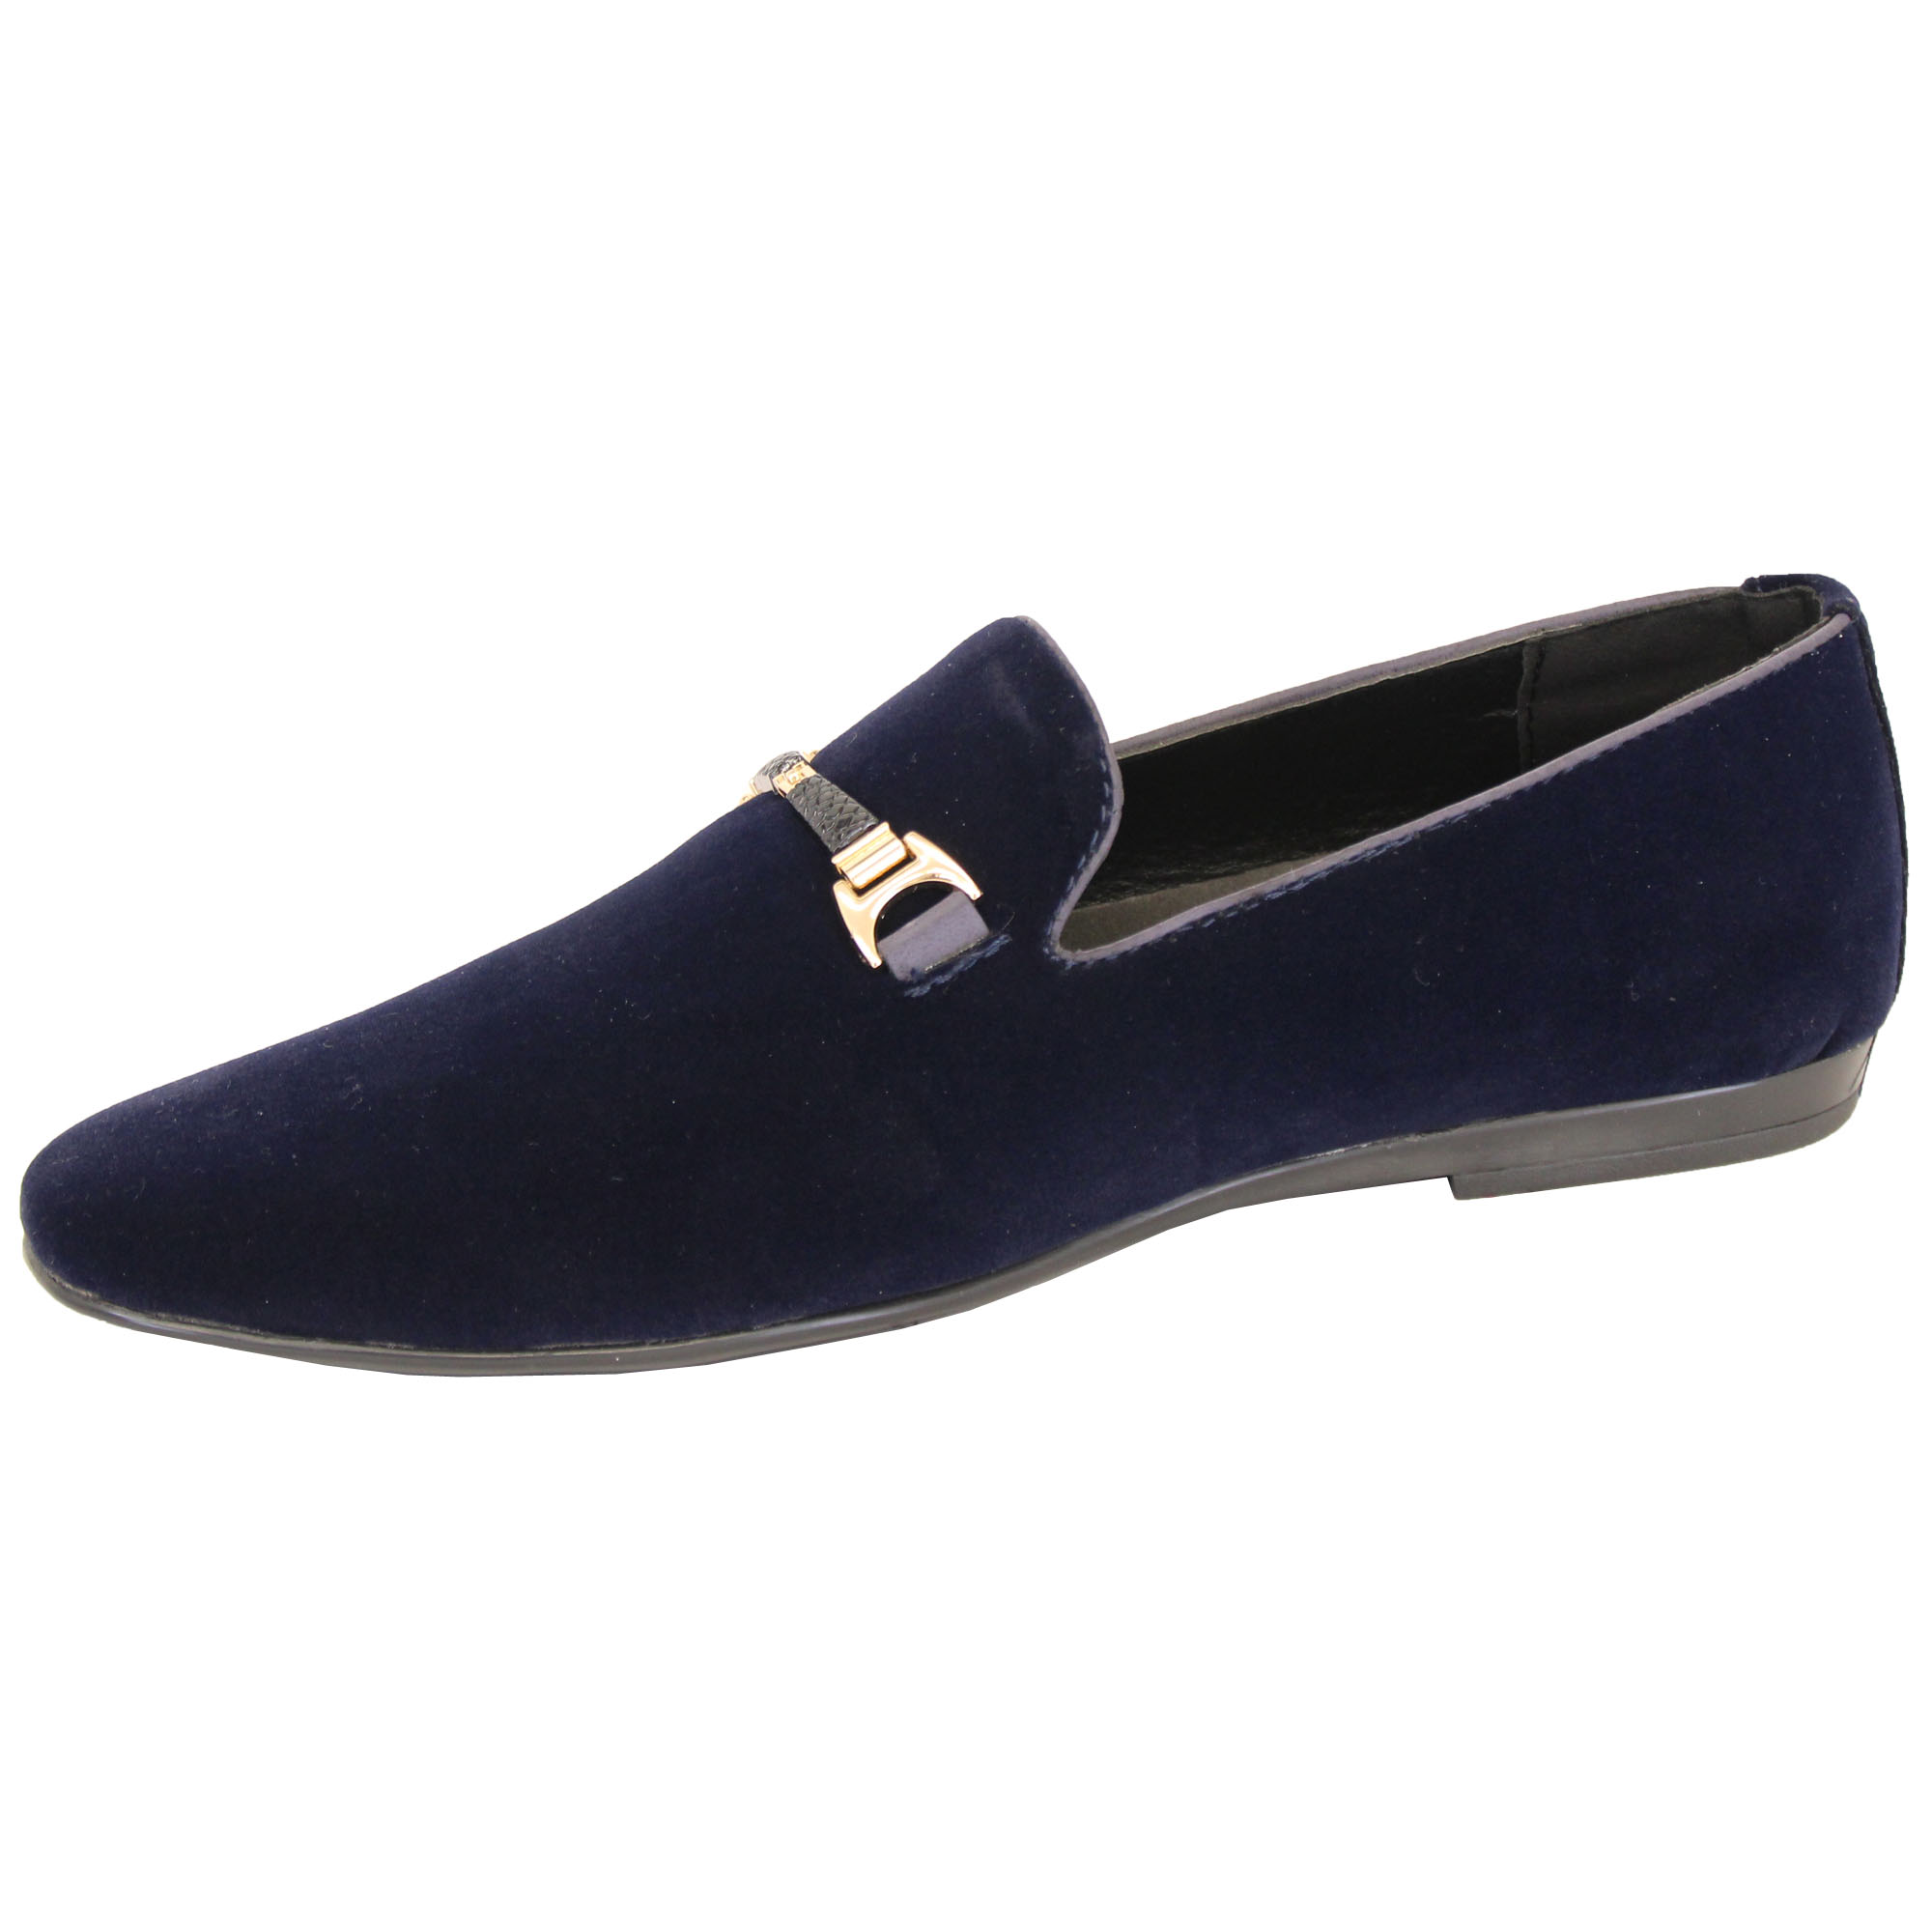 Mens-Slip-On-Italian-Shoes-Designer-Loafers-Suede-Look-Moccasin-Style-Fashion thumbnail 7